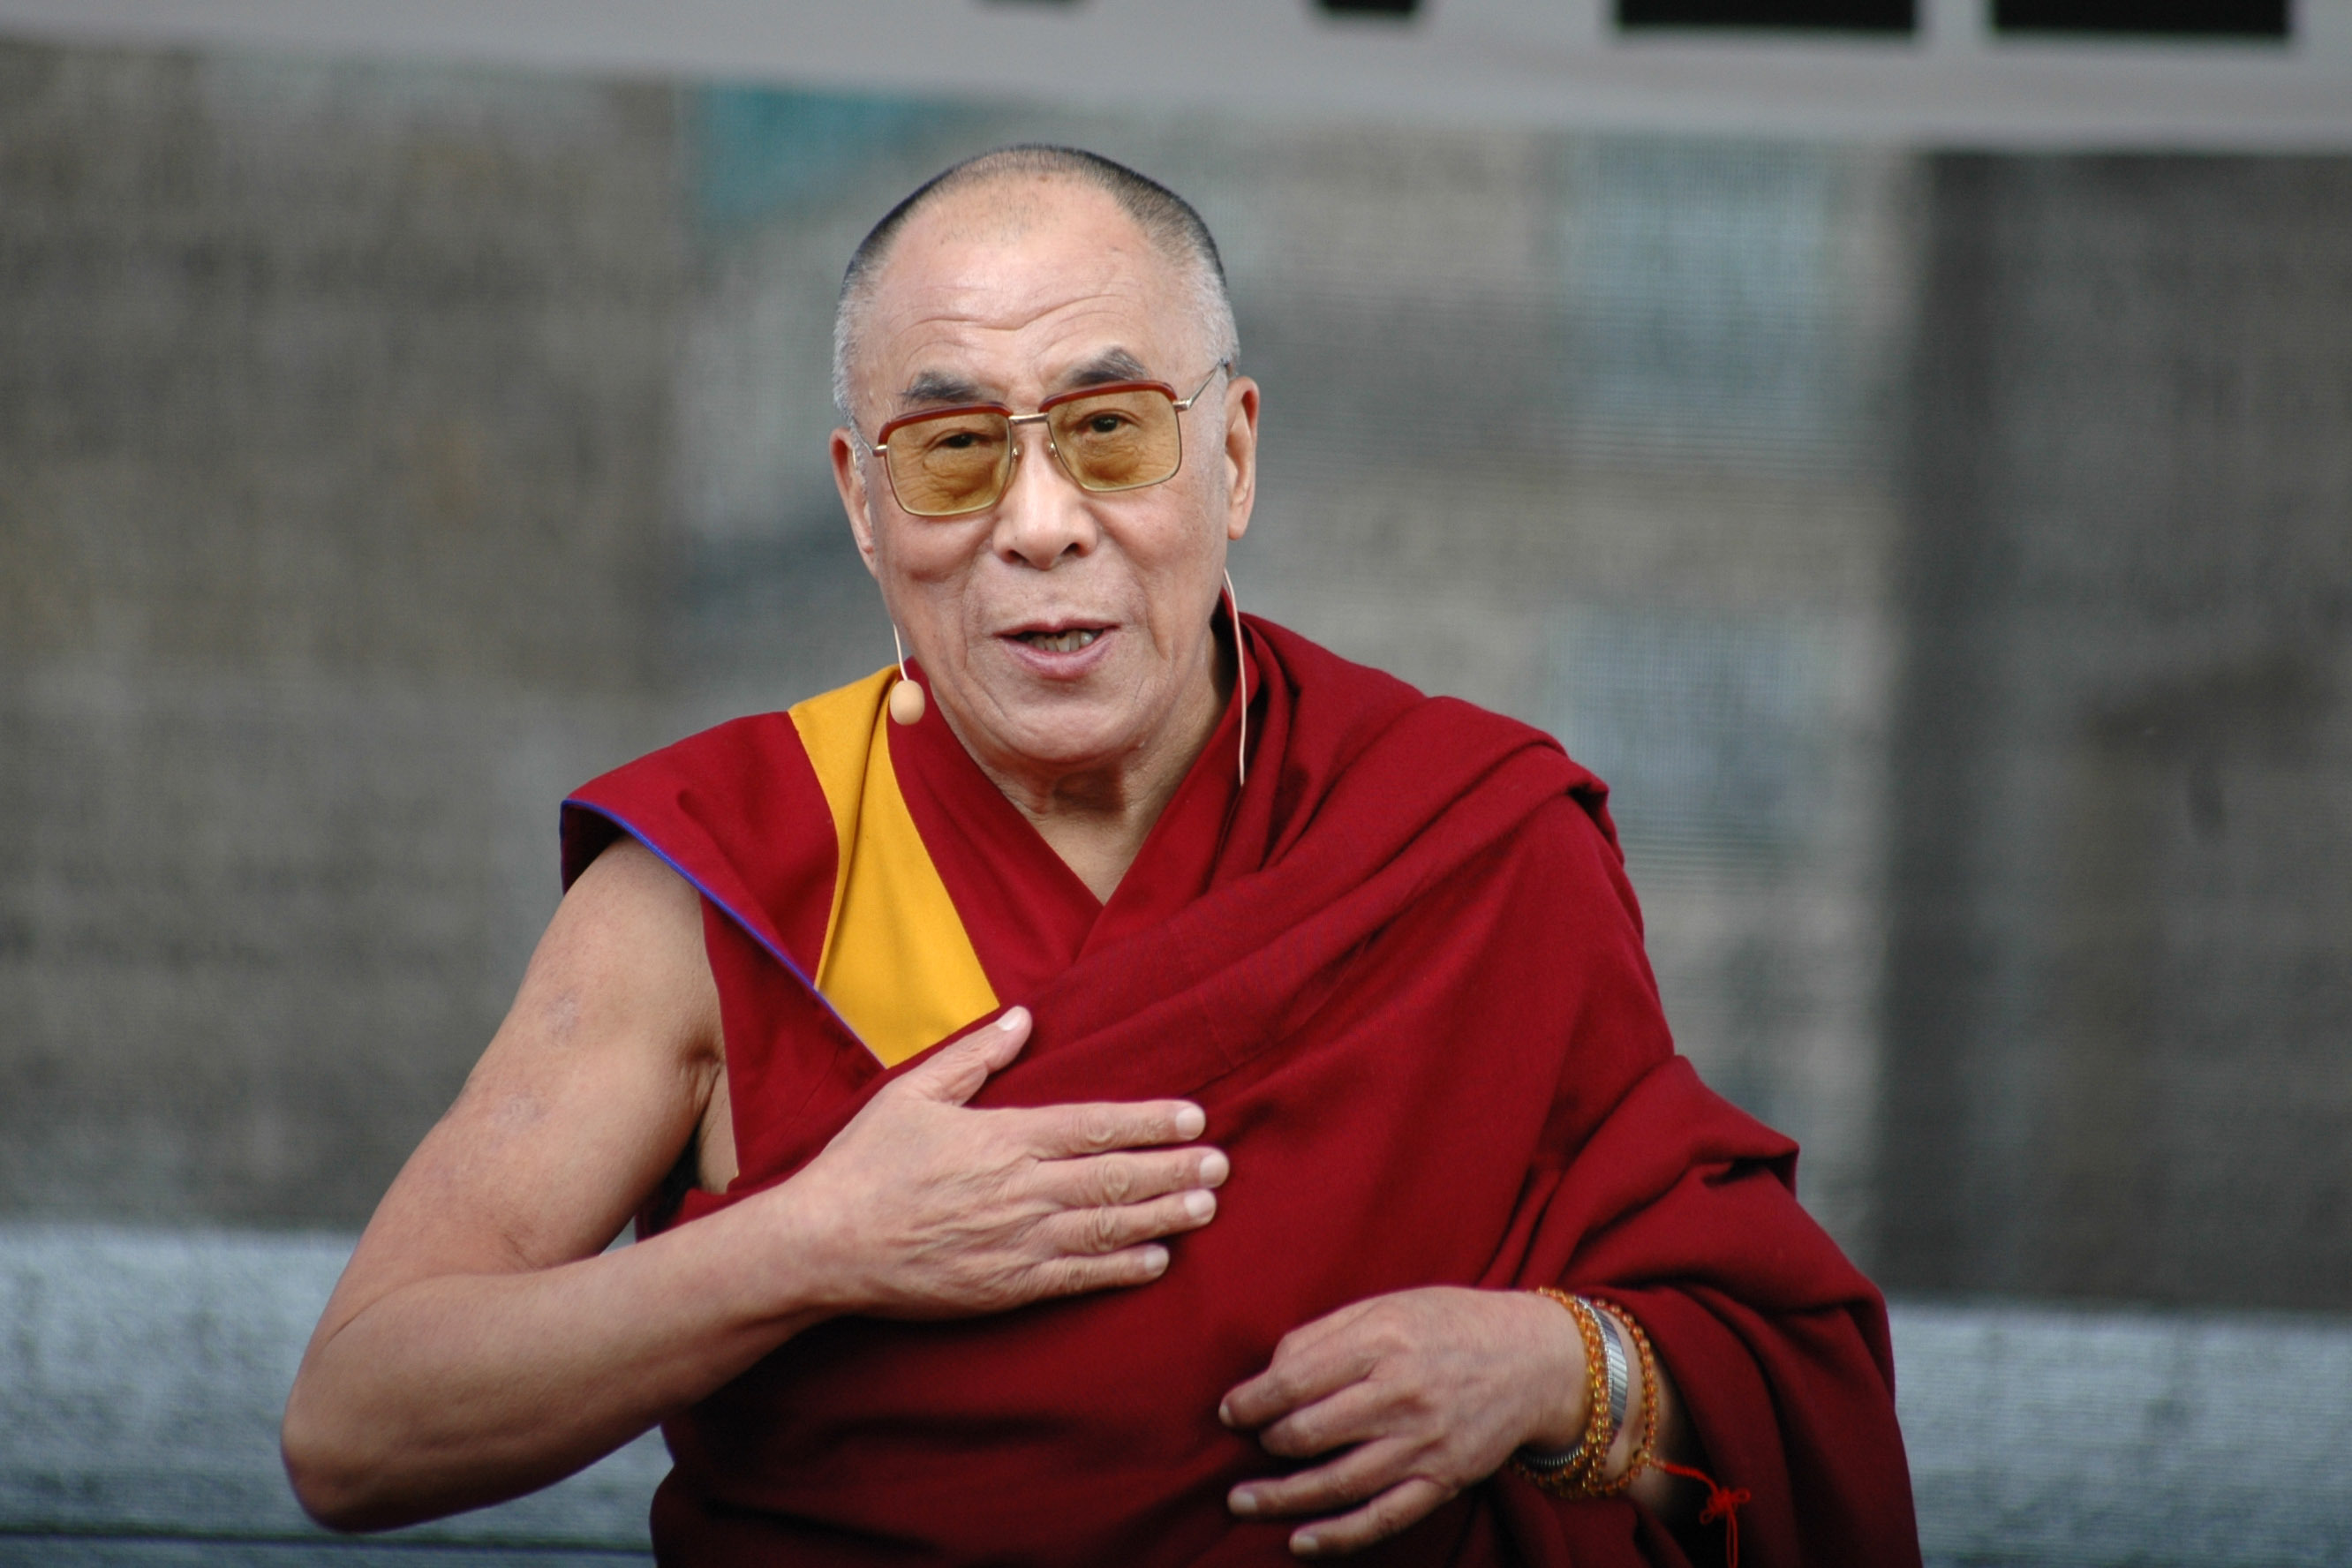 Dalai Lama reiterates secular ethics needed in modern education